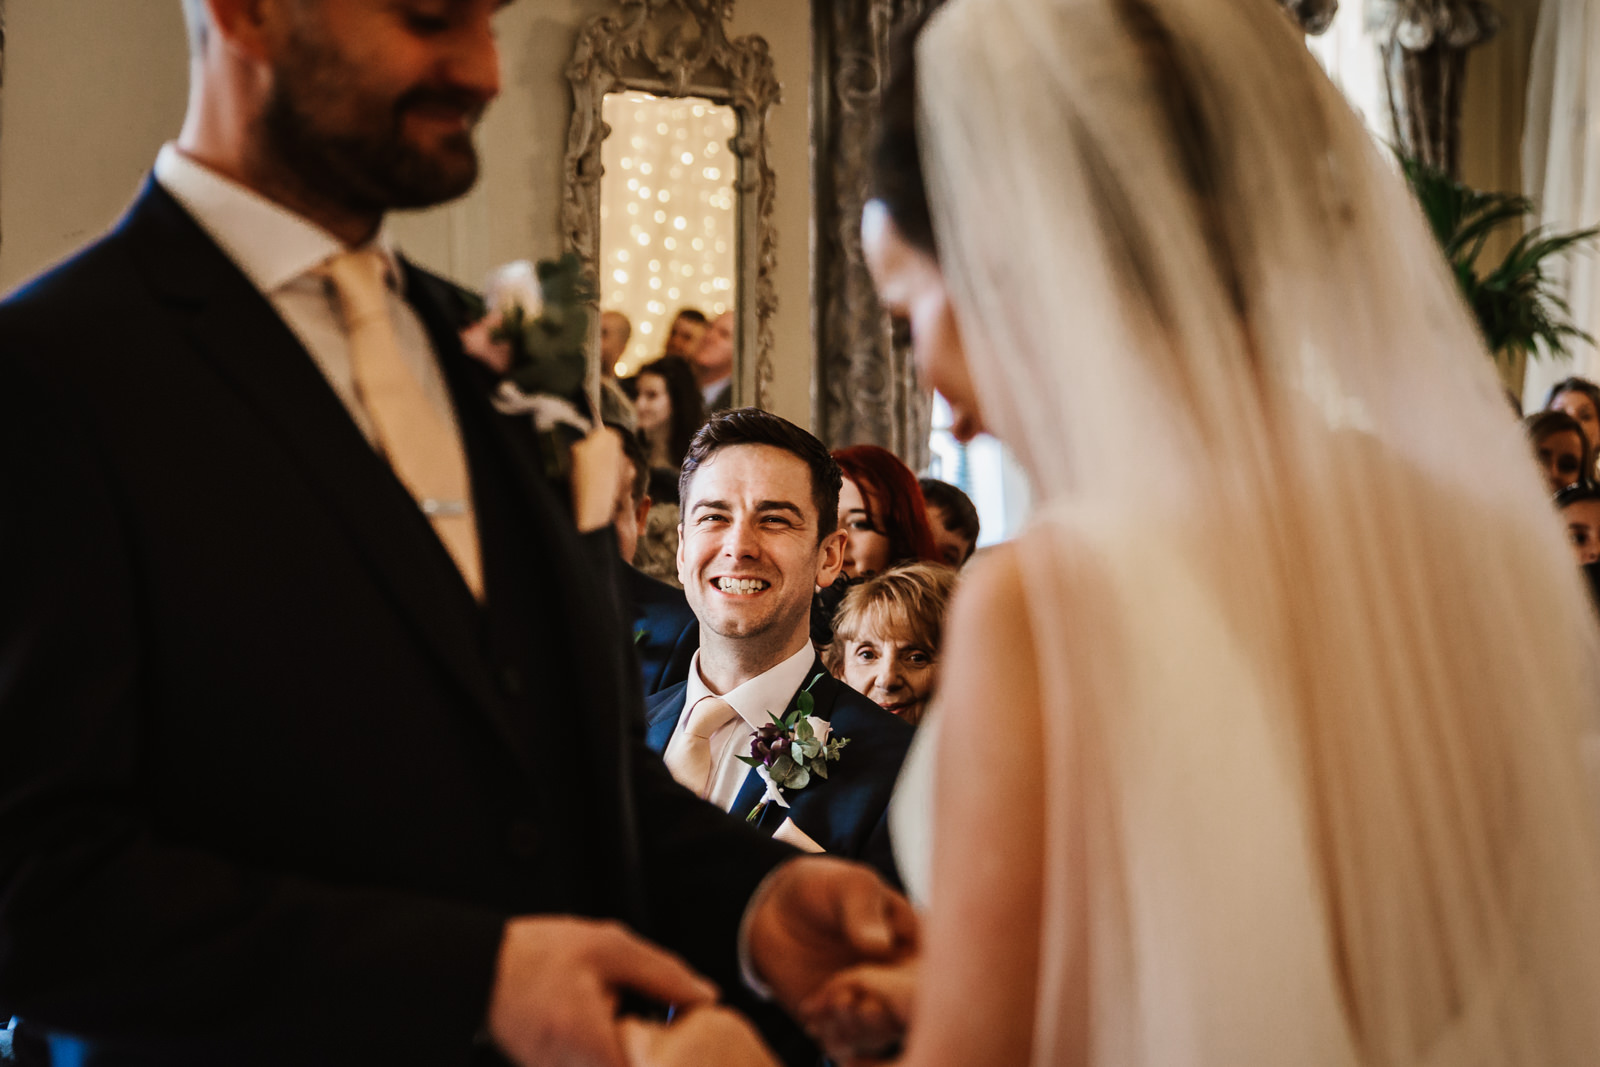 Best man smiling during ceremony